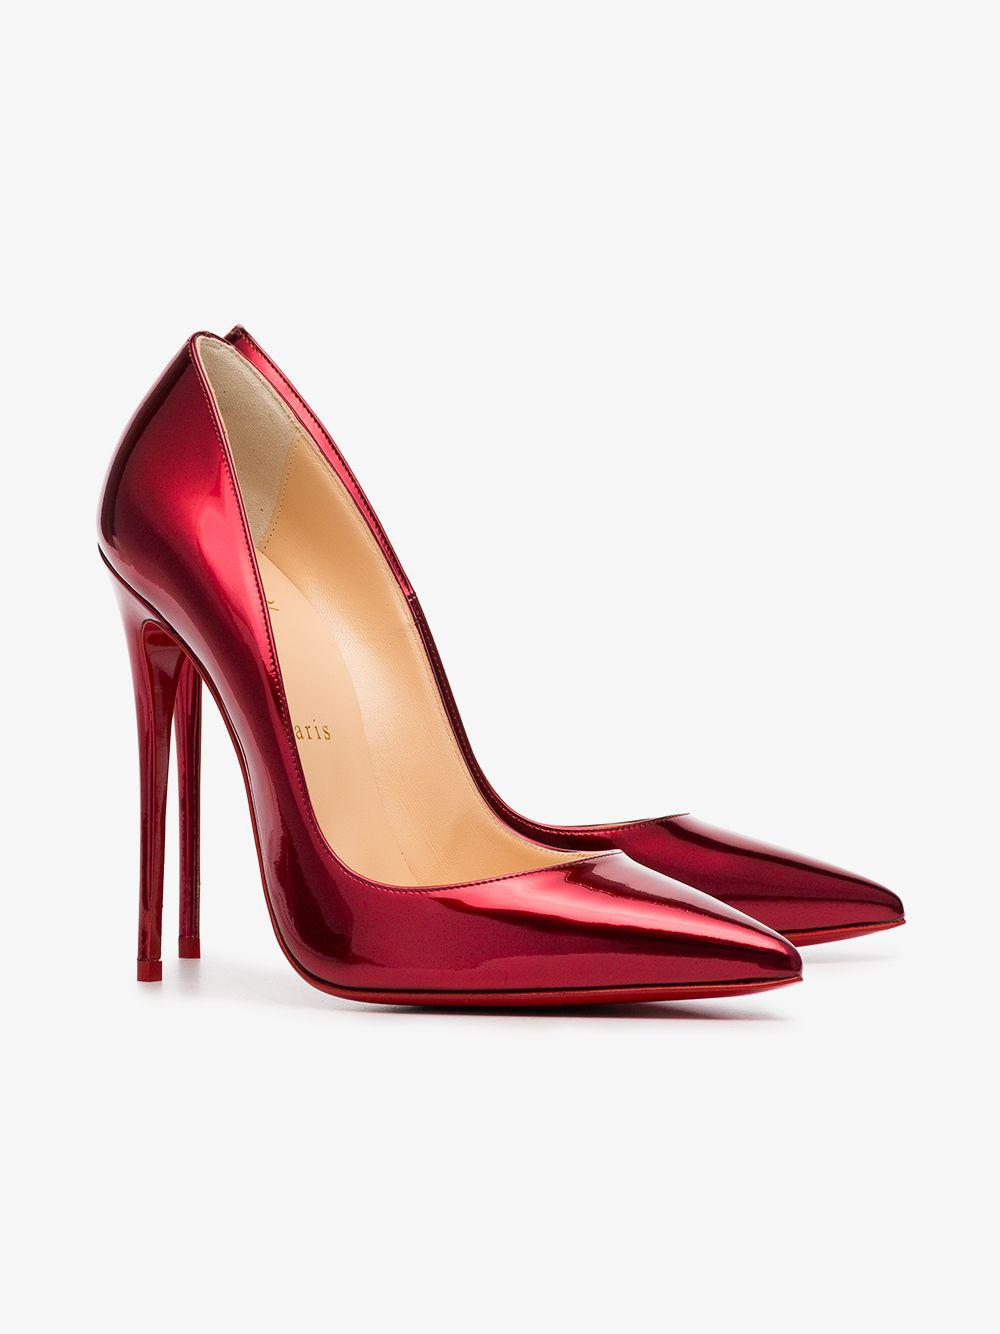 best service 664f4 1a79f Christian Louboutin Metallic Red So Kate 120 Patent Leather Pumps